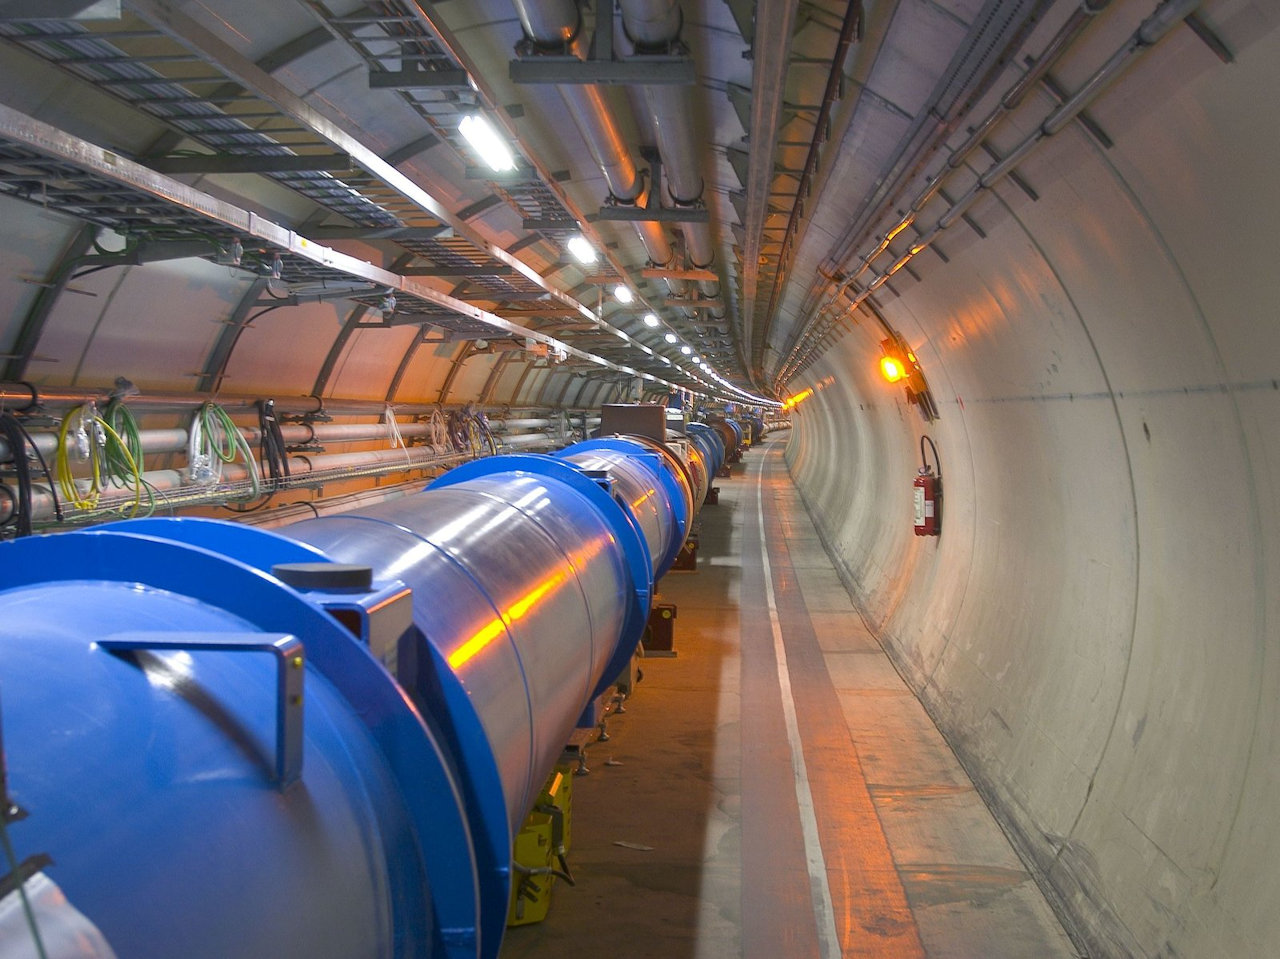 The Large Hadron Collider uses superconducting magnets to smash sub-atomic particles together at enormous energies - CERN